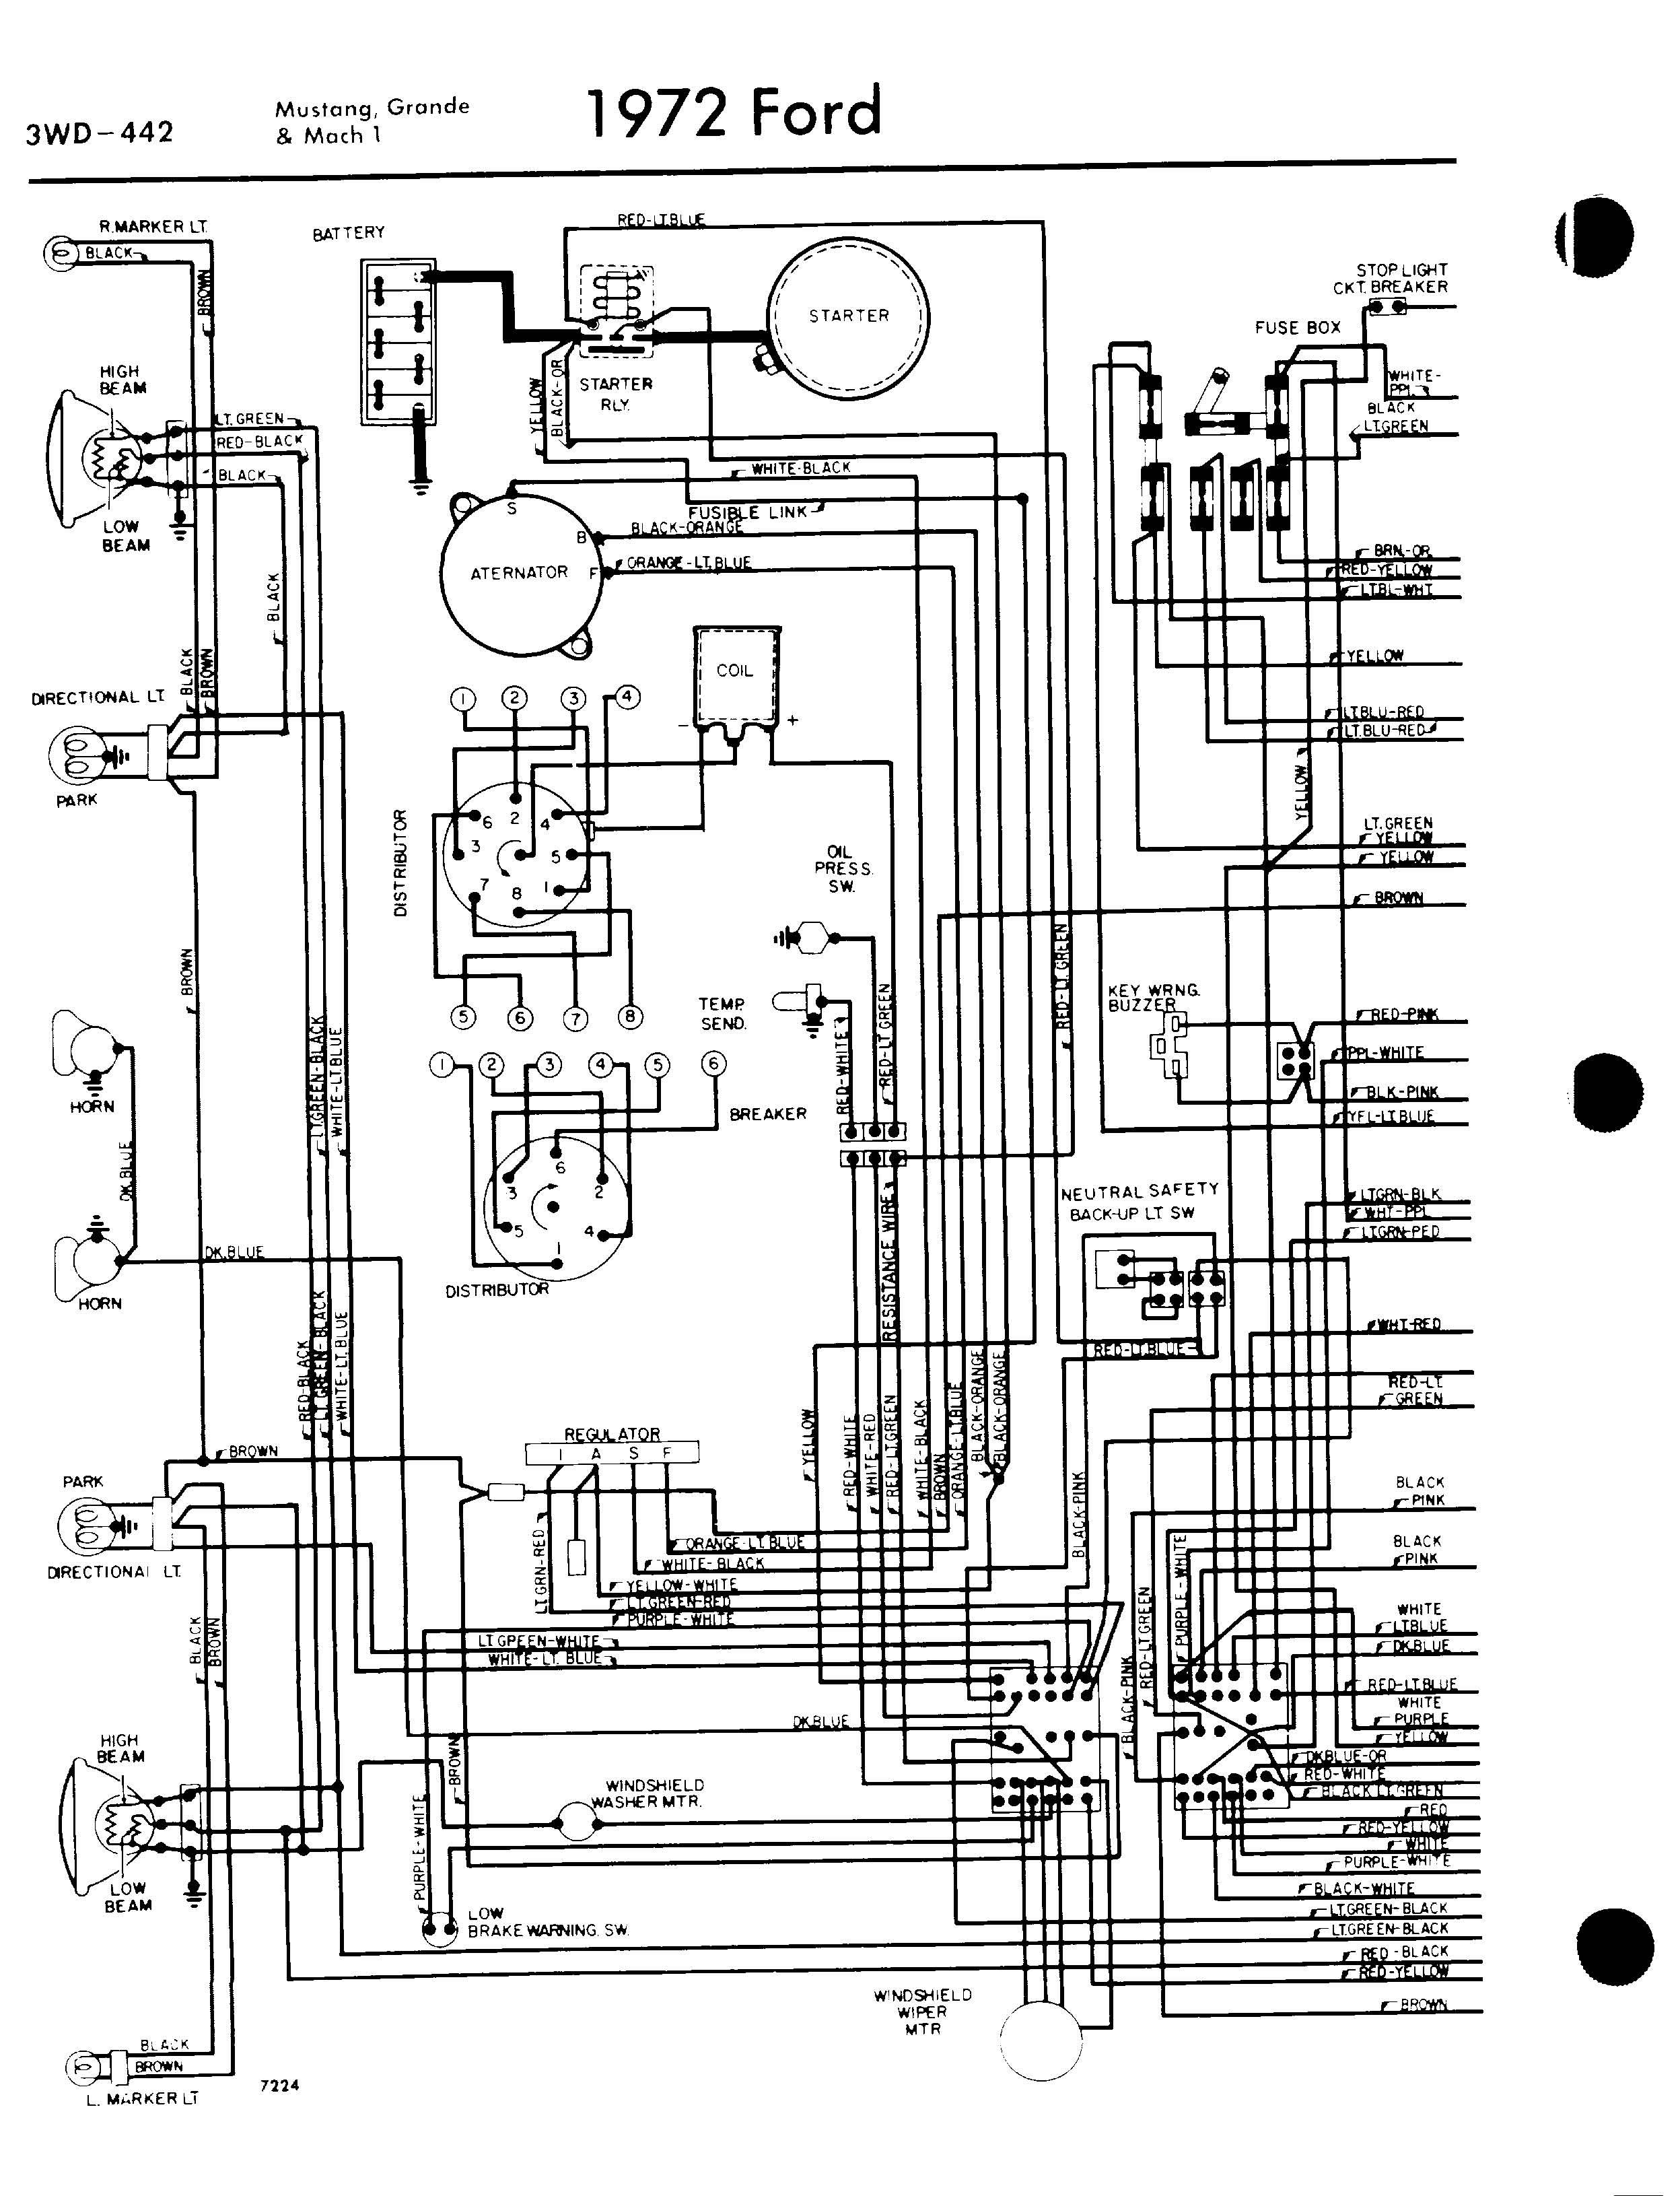 71af7a58e095e6a7716b32f1b23e8bd2 72 mach1 alternator wire harness diagram yahoo search results Basic Electrical Wiring Diagrams at webbmarketing.co